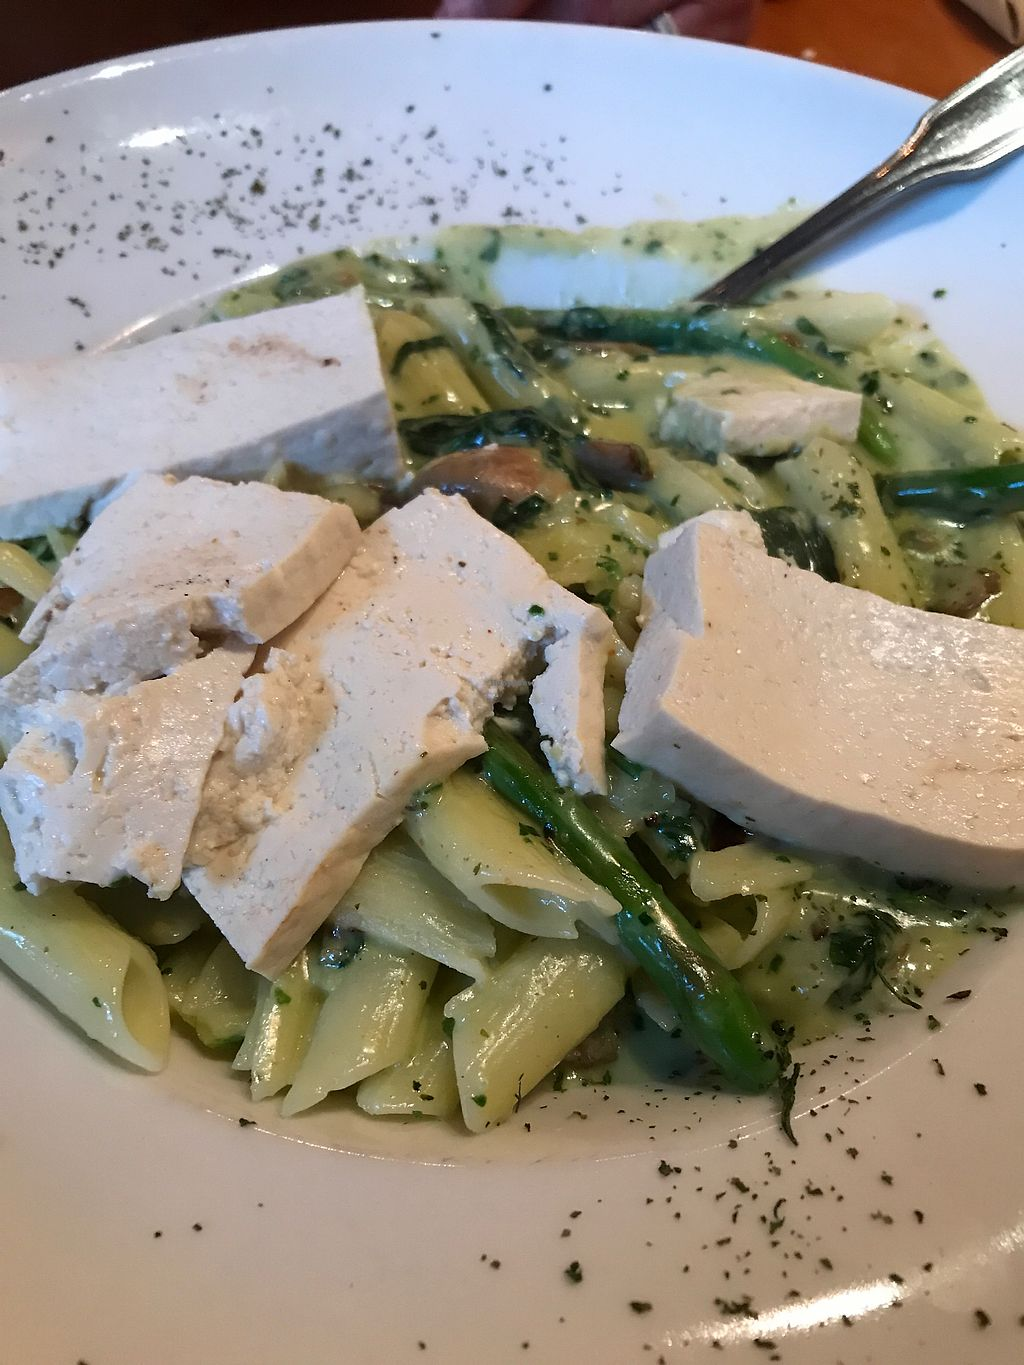 """Photo of Fitness Grill  by <a href=""""/members/profile/sjberrest"""">sjberrest</a> <br/>Asparagus Pasta with Smoked Tofu <br/> July 1, 2017  - <a href='/contact/abuse/image/60466/275439'>Report</a>"""